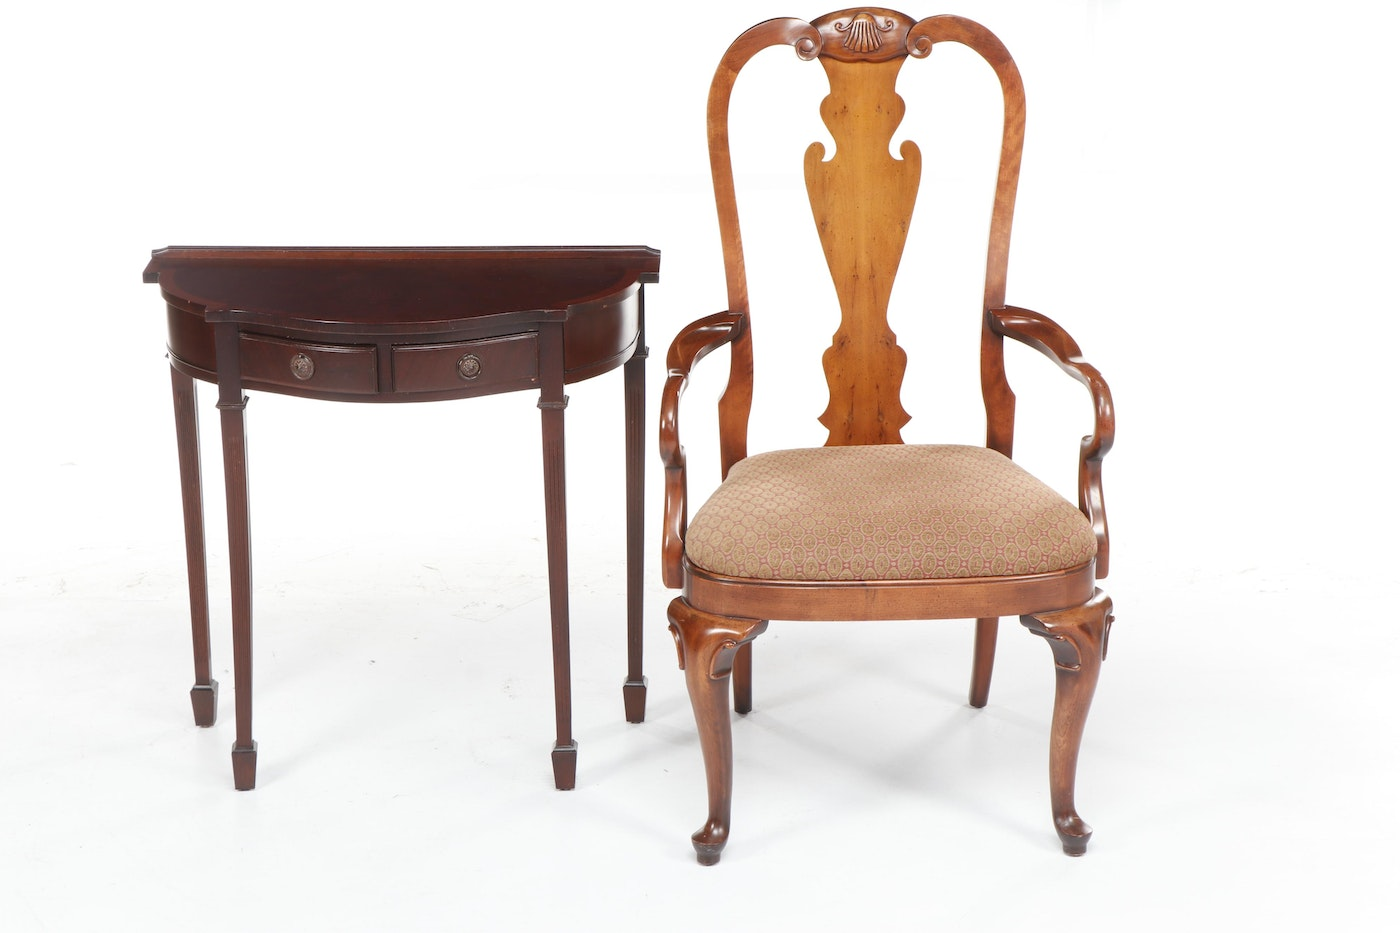 Contemporary Queen Anne Style Fiddle Back Wooden Chair And